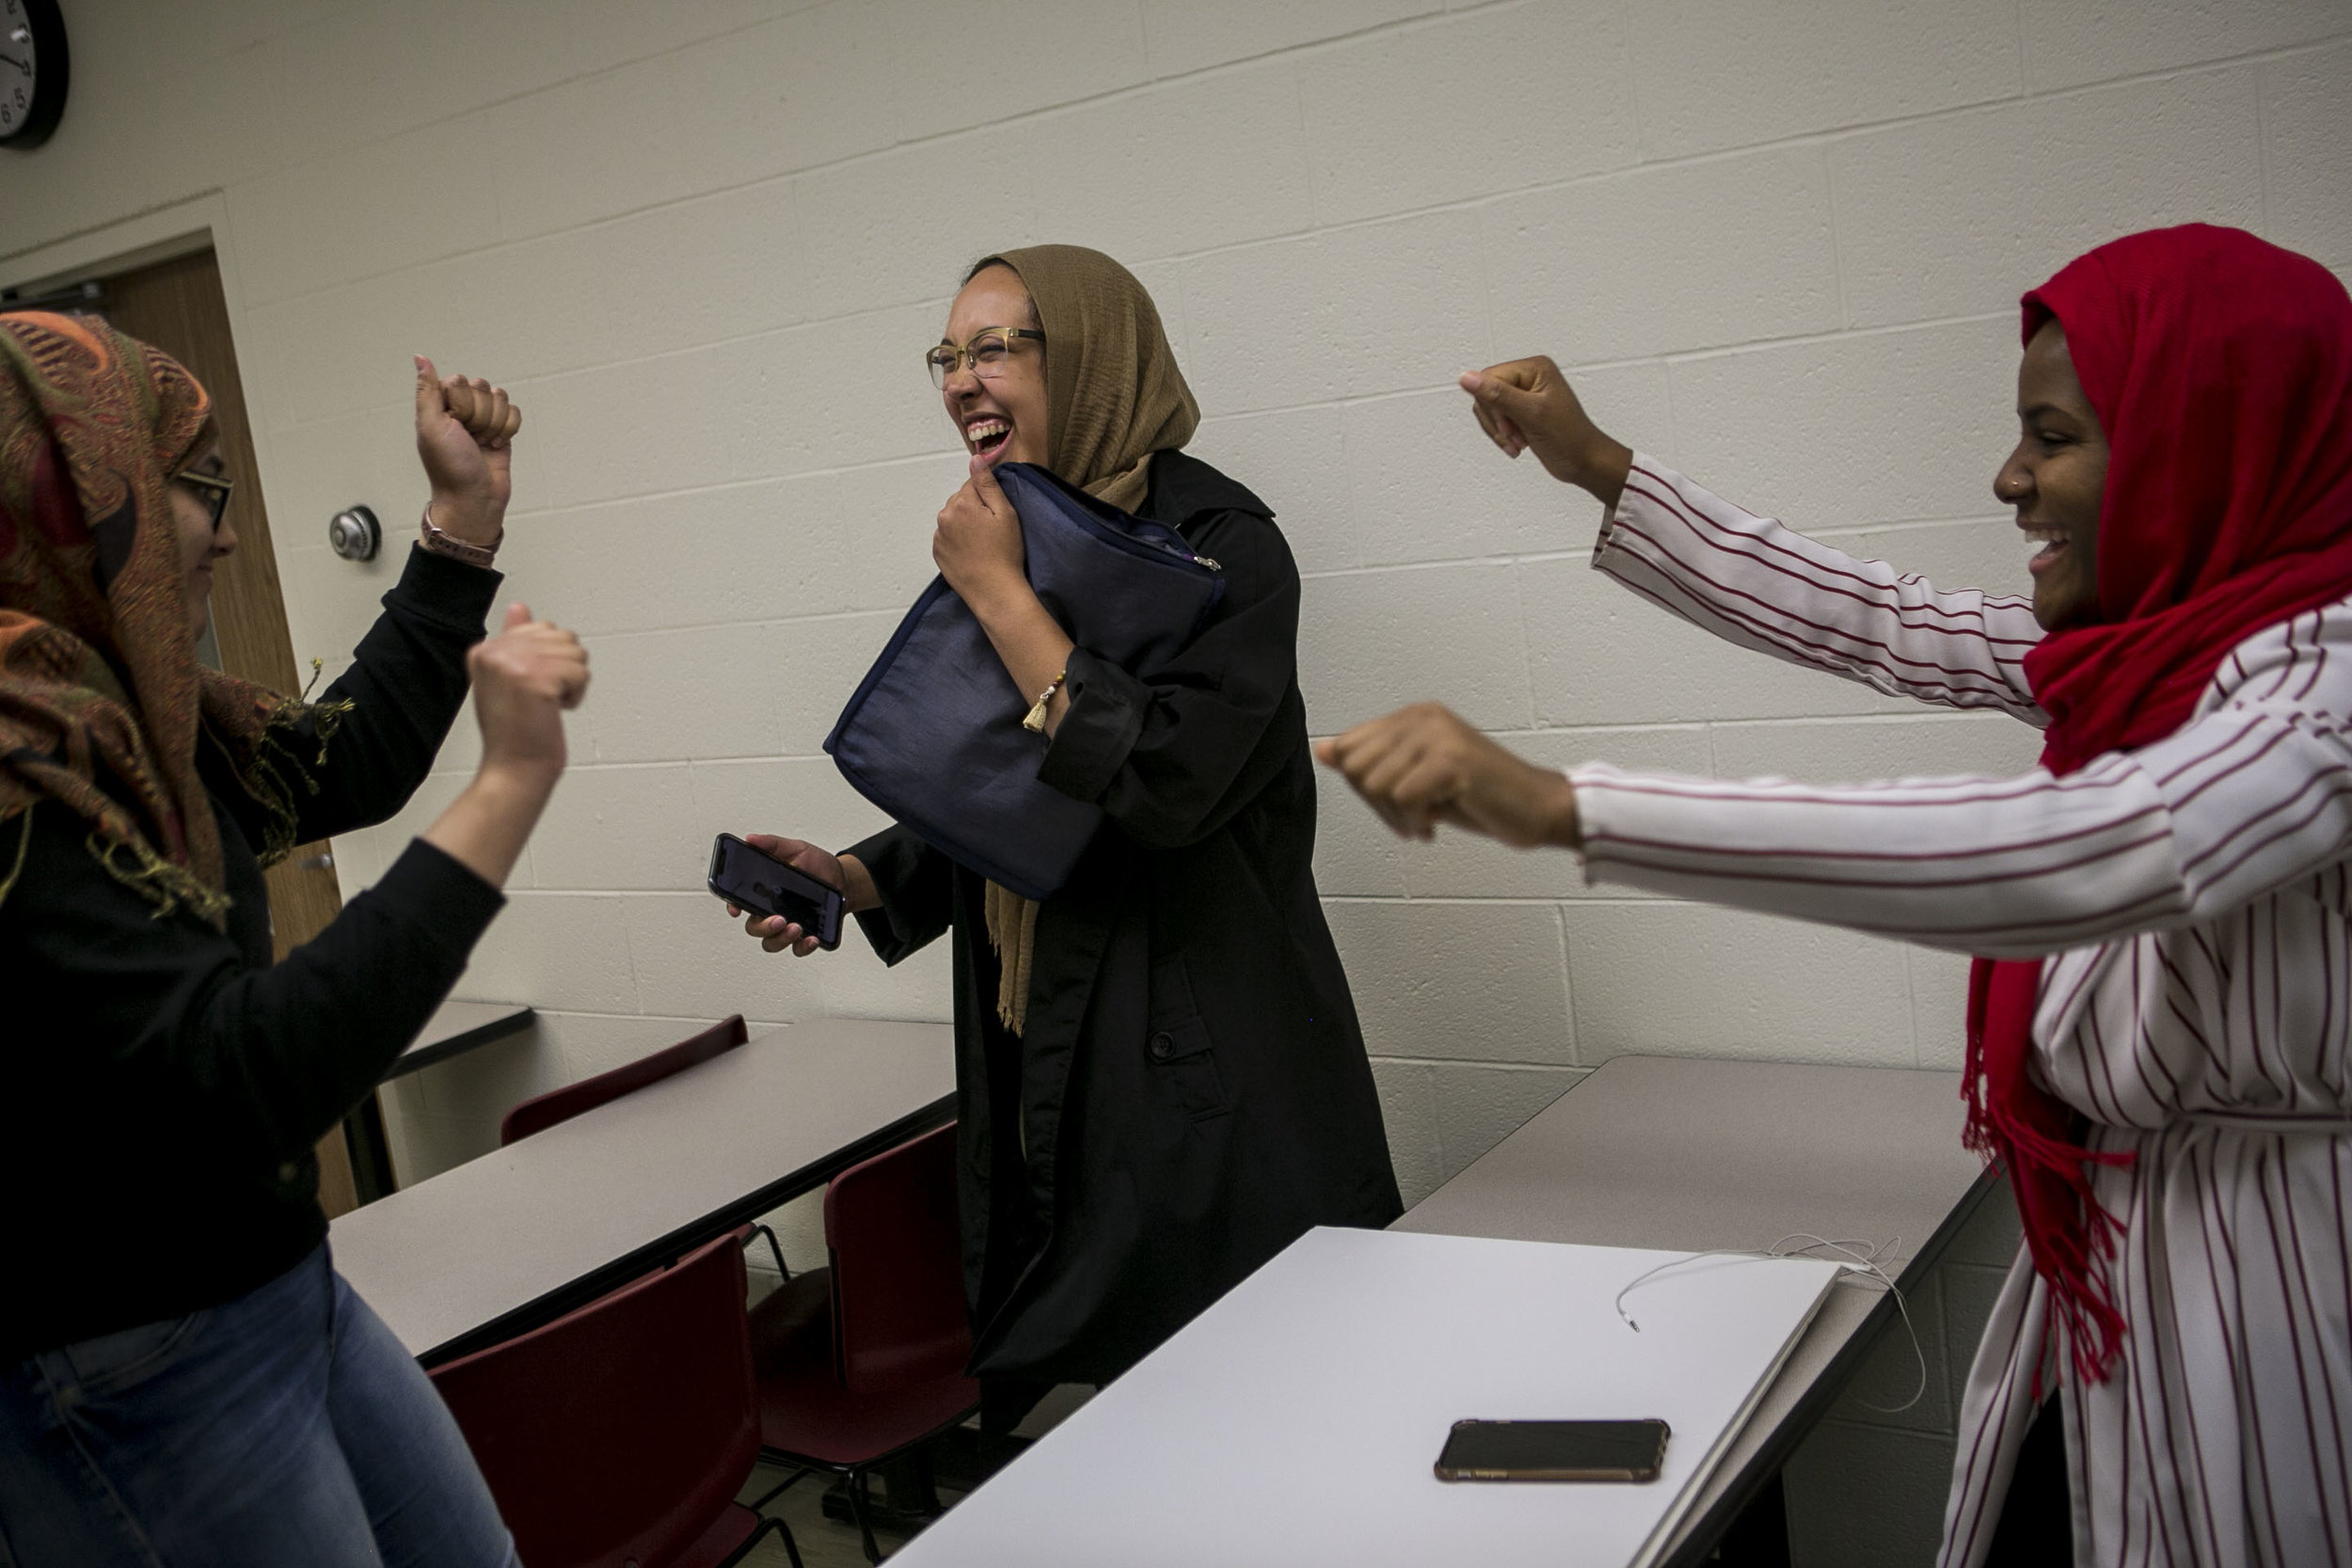 Riley laughs as her friends Manahil Khan, left, and Halima Abdi, dance around her after a meeting of the Muslim Student Association on the campus Central Michigan University in Mt. Pleasant, Mich.